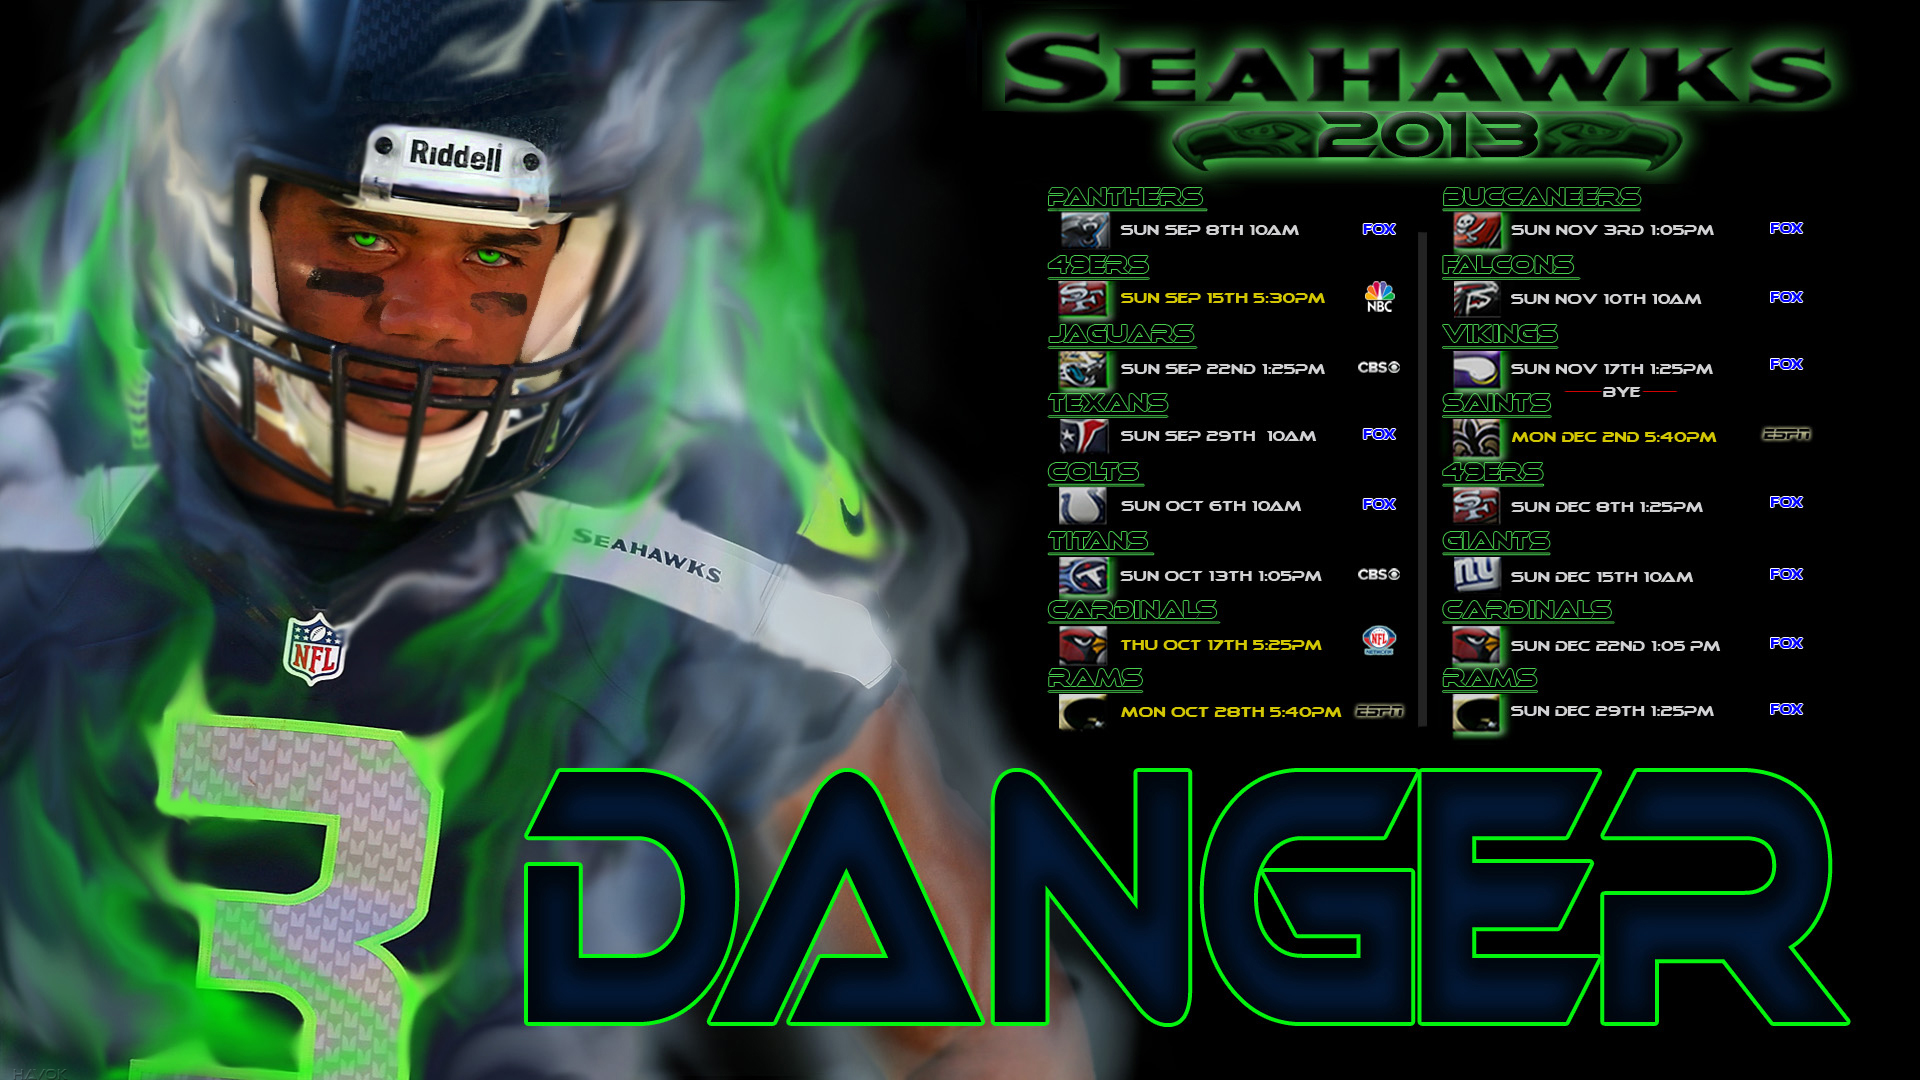 Seattle Seahawks Wallpaper Iphone Posted By Samantha Anderson